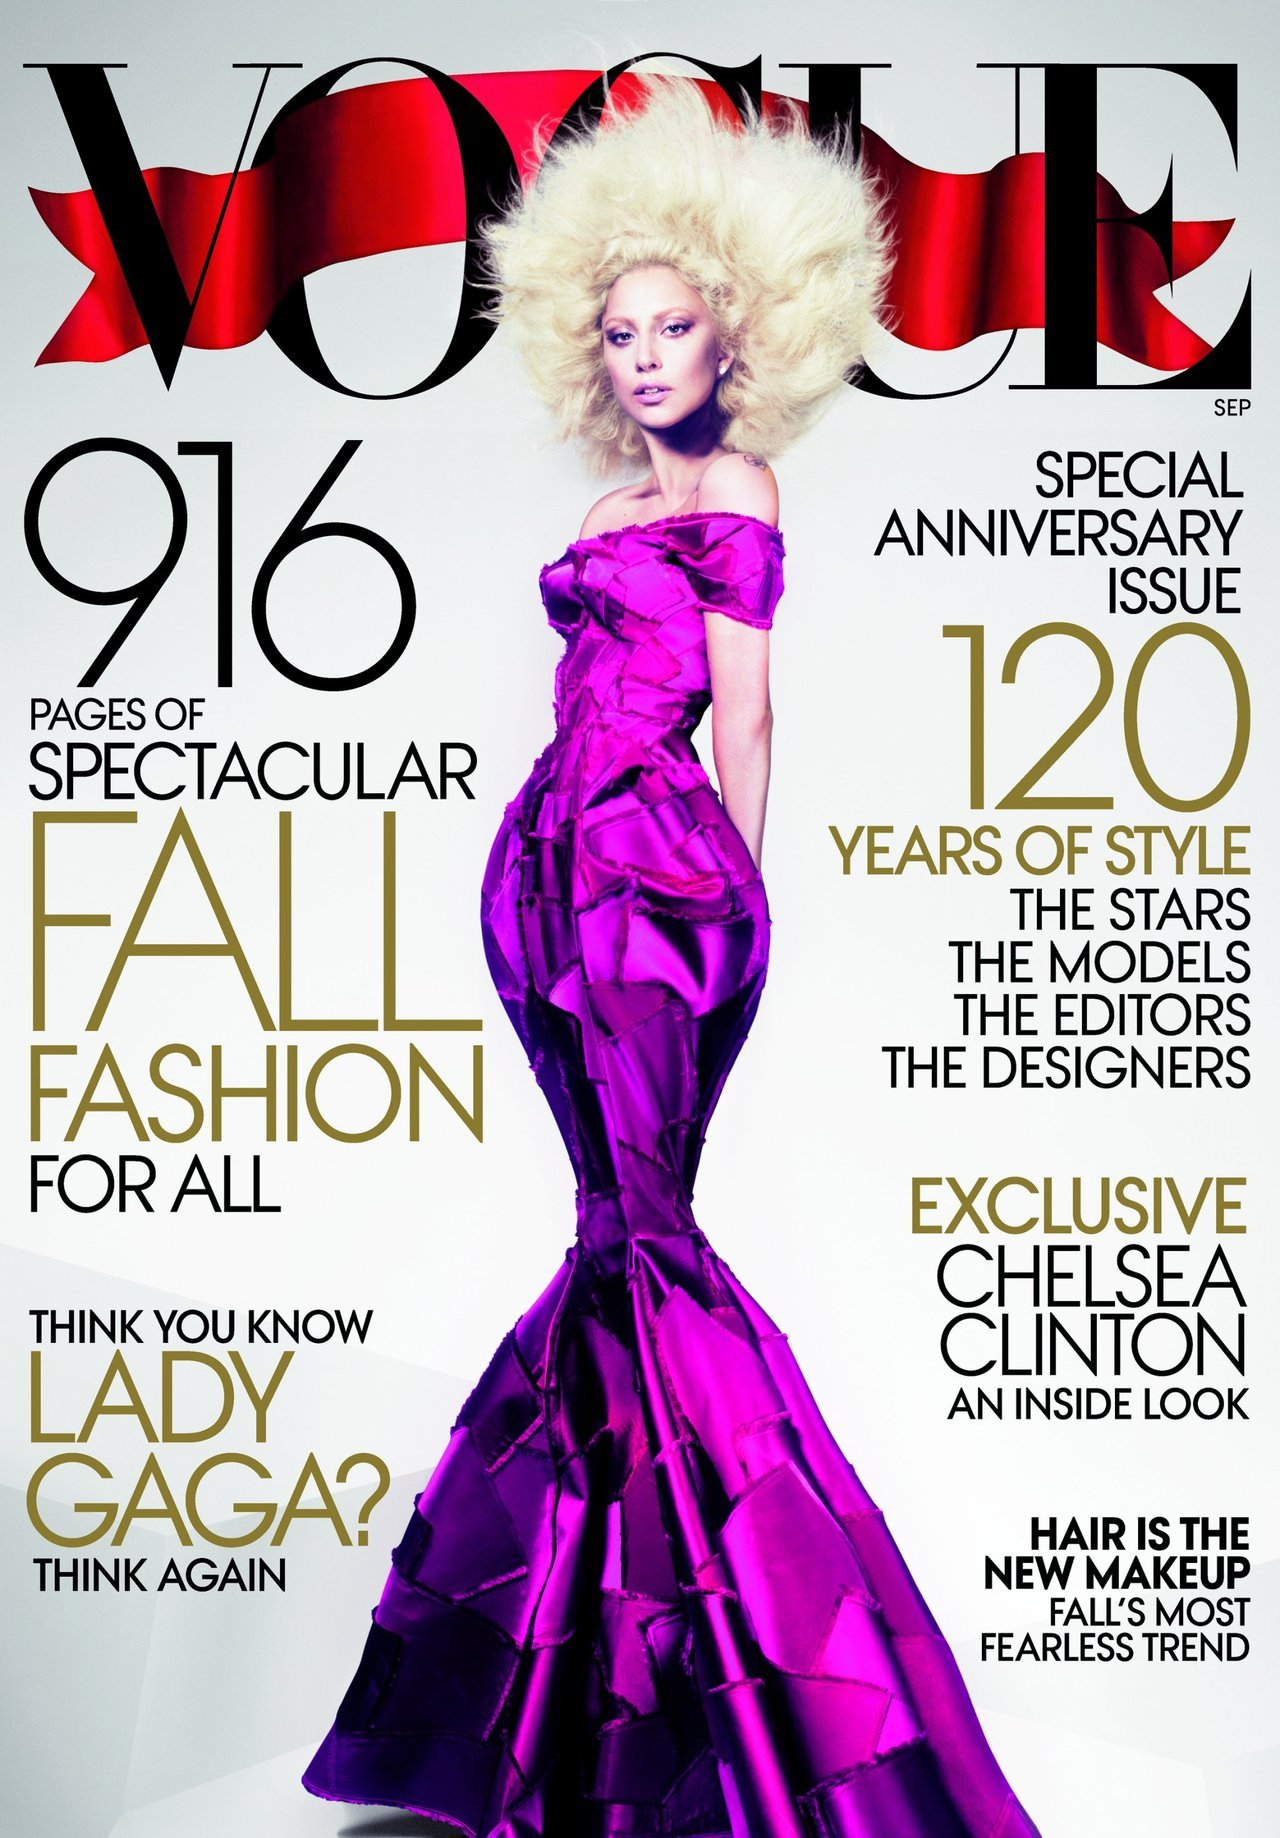 LADY GAGA COVERS VOGUE'S SEPTEMBER 2012 ISSUE After a very much anticipated build up, Lady Gaga's September 2012 Vogue cover has finally arrived. It is quoted to be Vogue's biggest and most important issue in history garnering over 916 pages and is also the pop songstress' second time in a row gracing a Vogue cover as she did last year as well. HOT!